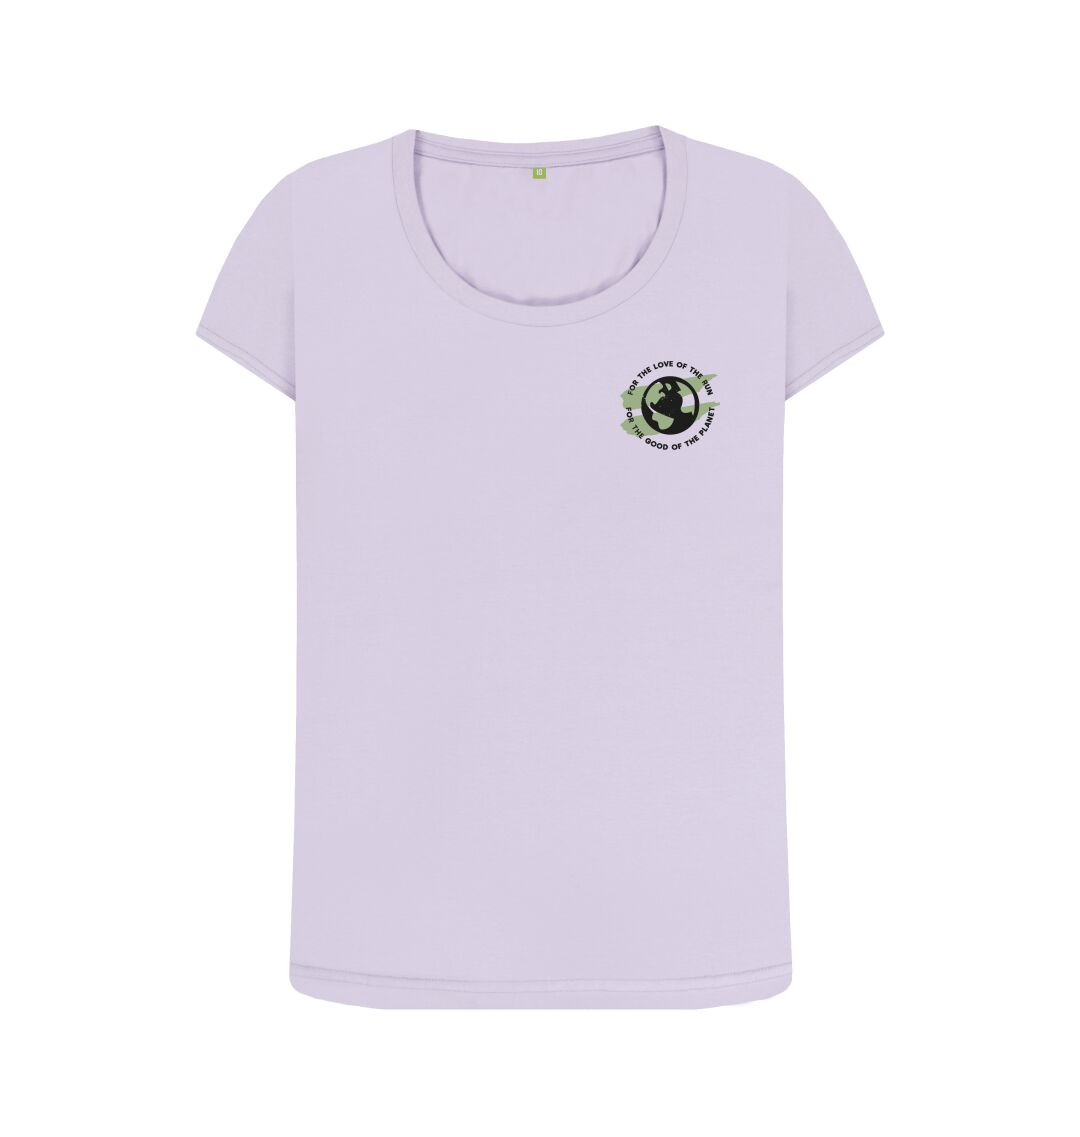 Violet Earth Scoop Tee in Terrain - Women's